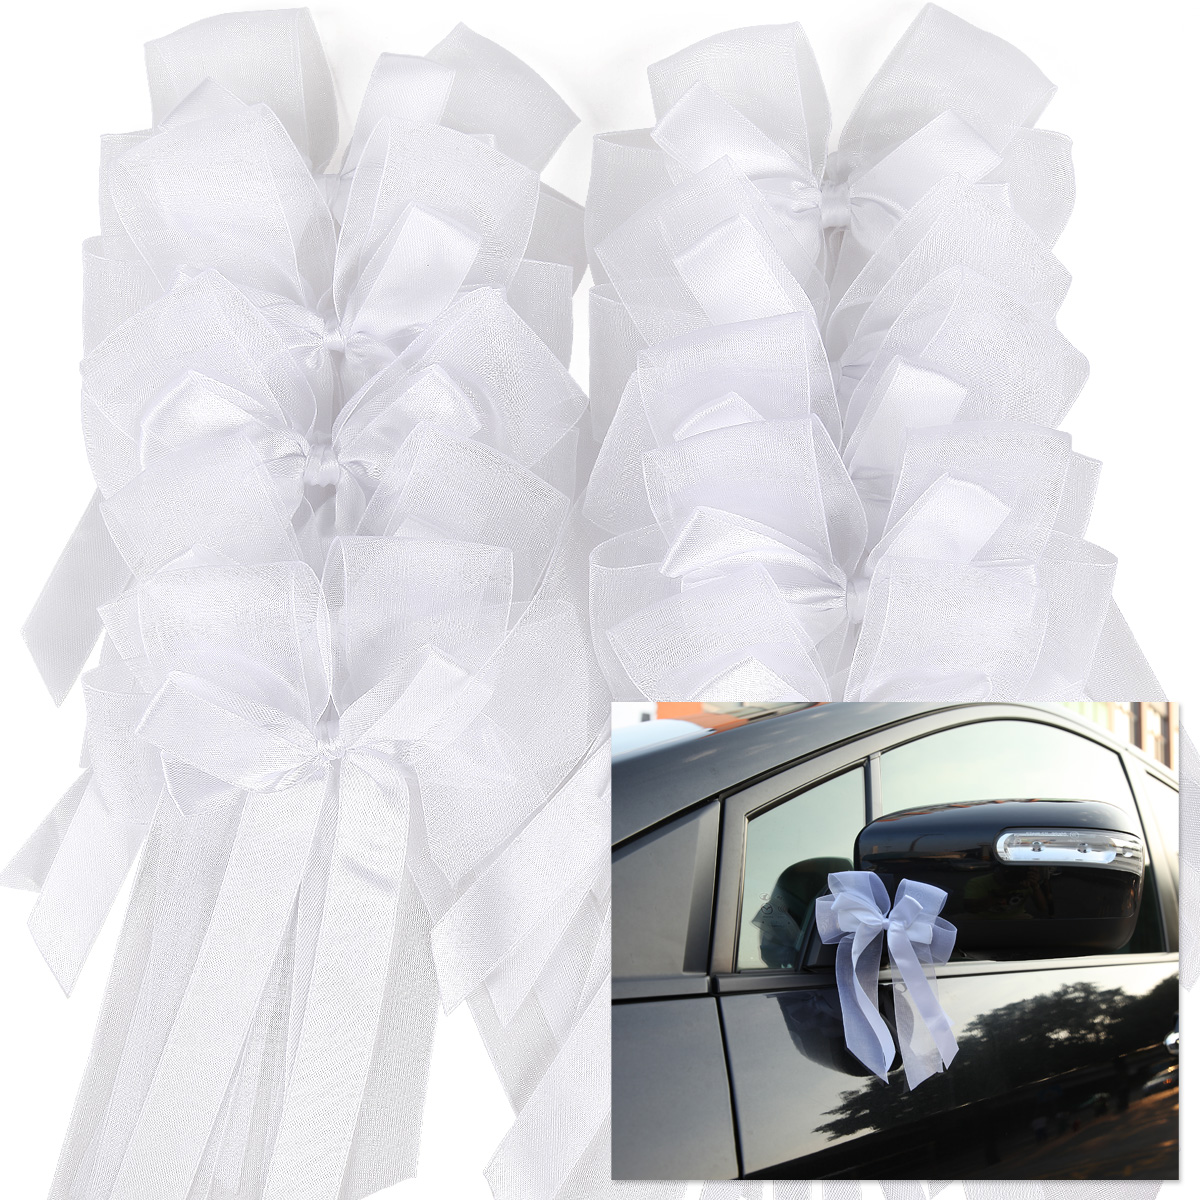 10x noeud papillon ruban satin tulle mariage voiture ftes dcoration 057 - Noeud Pour Voiture Mariage Tulle